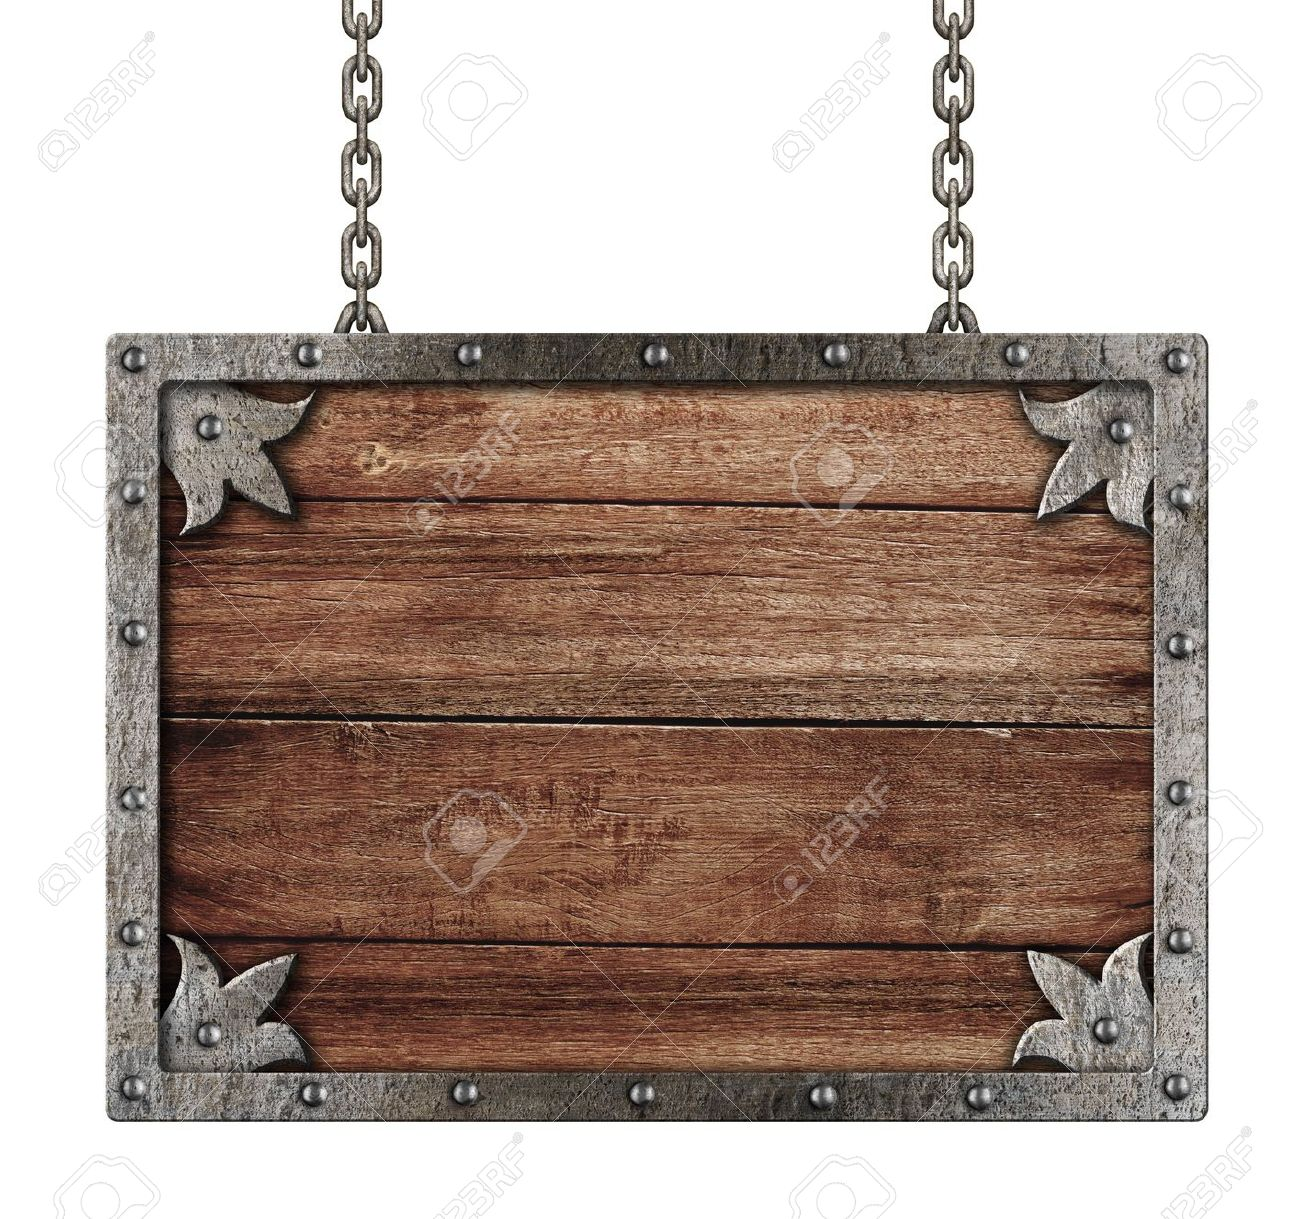 medieval old sign with chains isolated on white Stock Photo - 20580364